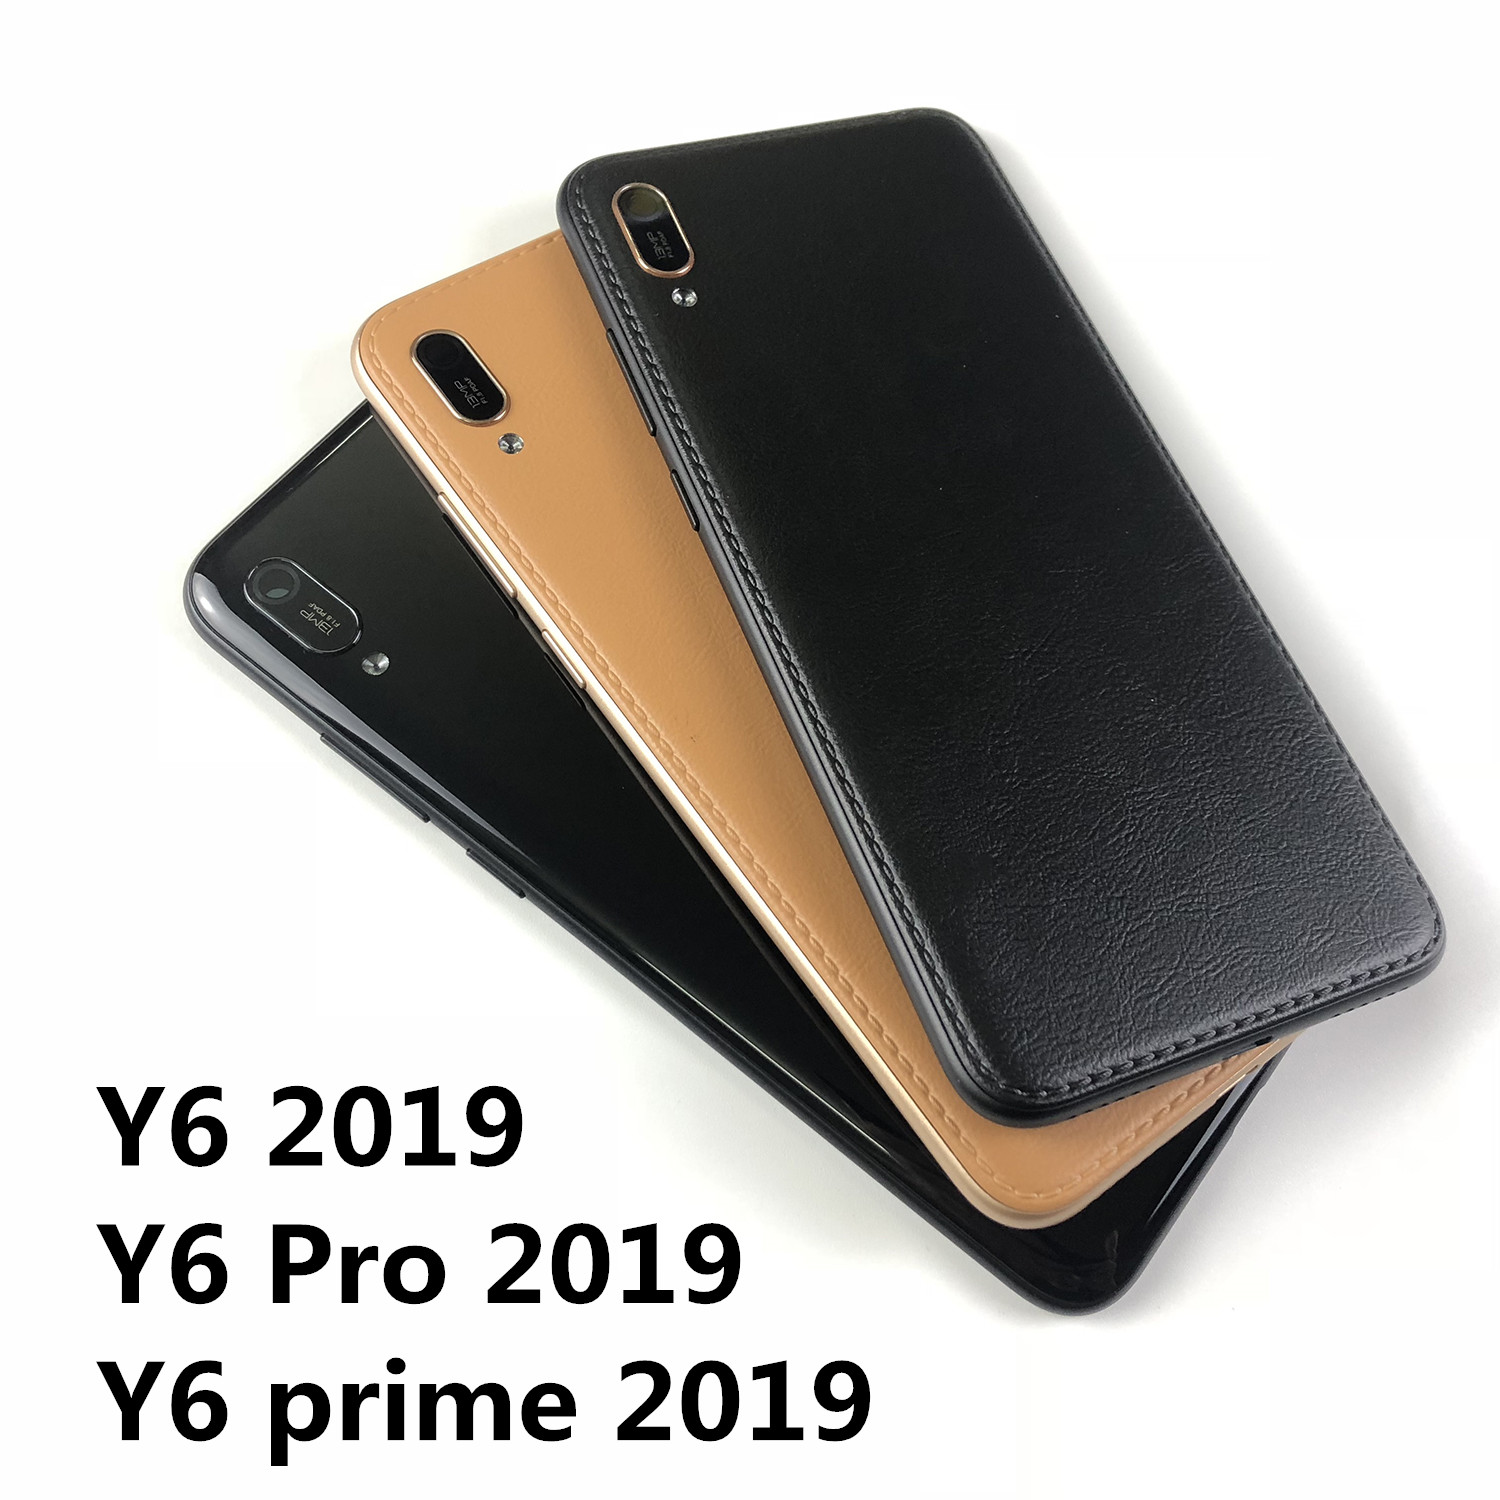 For Huawei Y6 2019 / Y6 Prime 2019 / Y6 Pro 2019 Housing Battery Cover Back Cover And Power Volume Buttons+logo